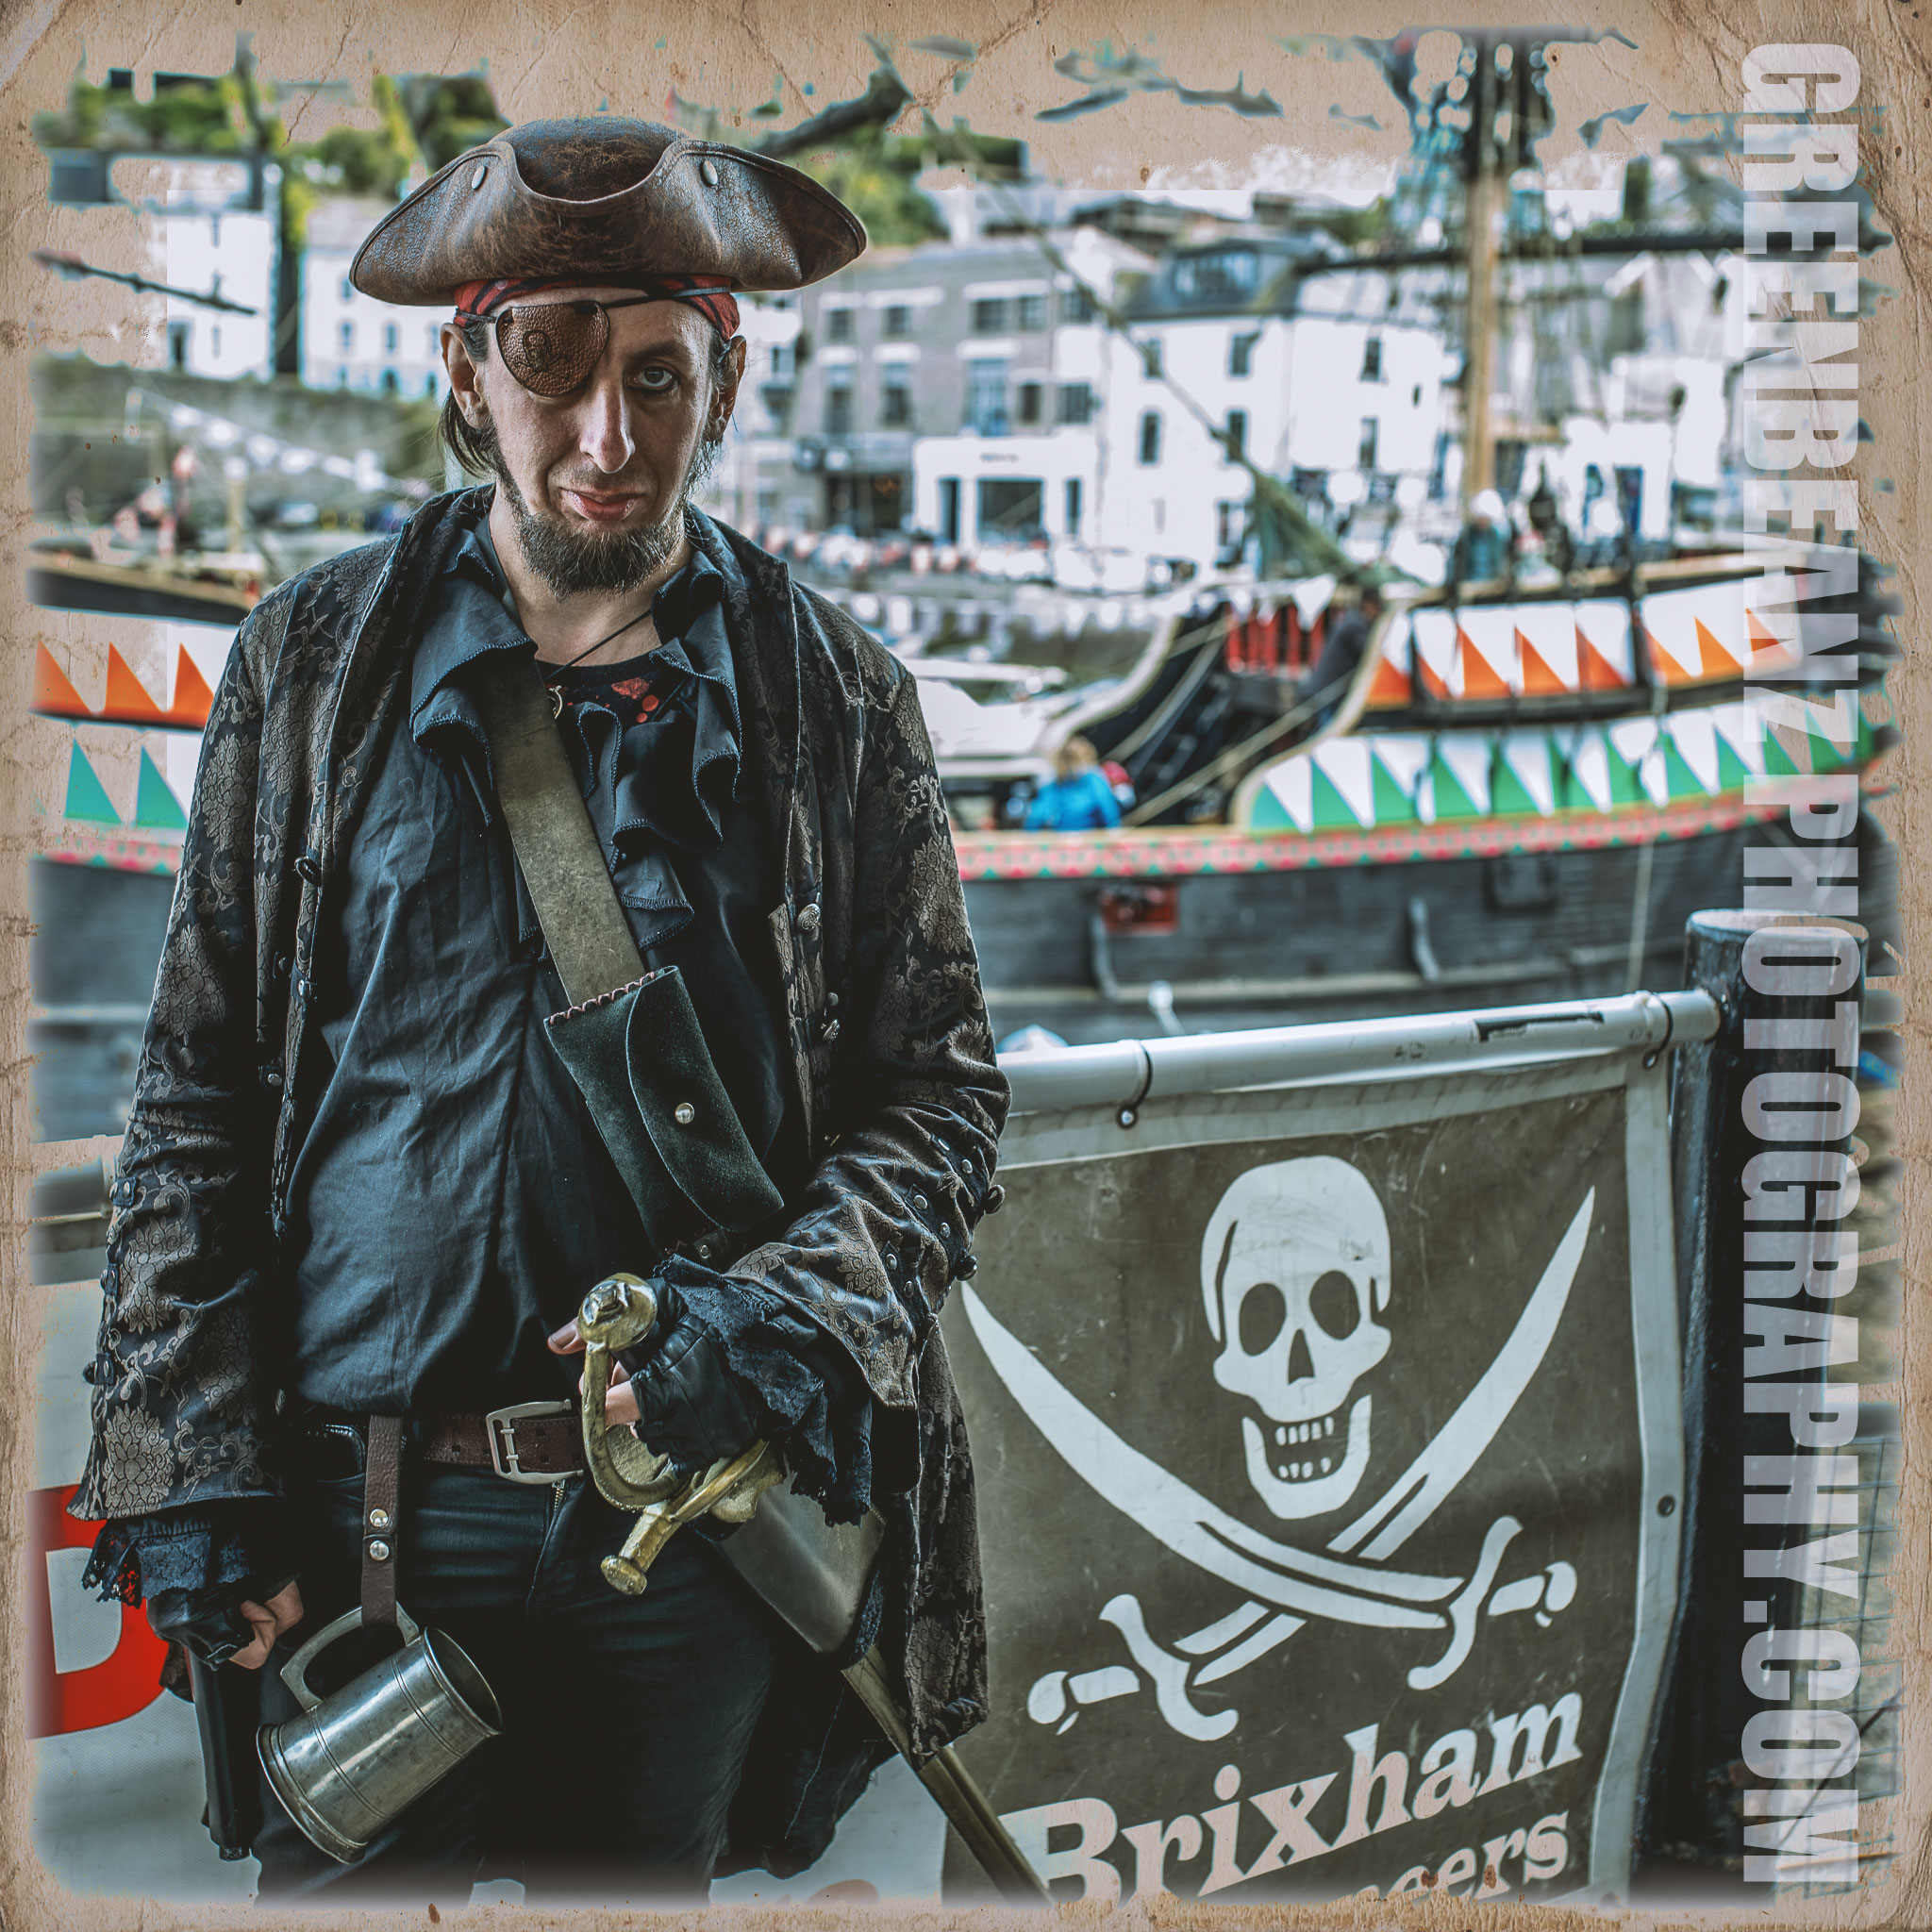 Actor Rich Sanford at Brixham's Annual Pirate Festival in May 2019